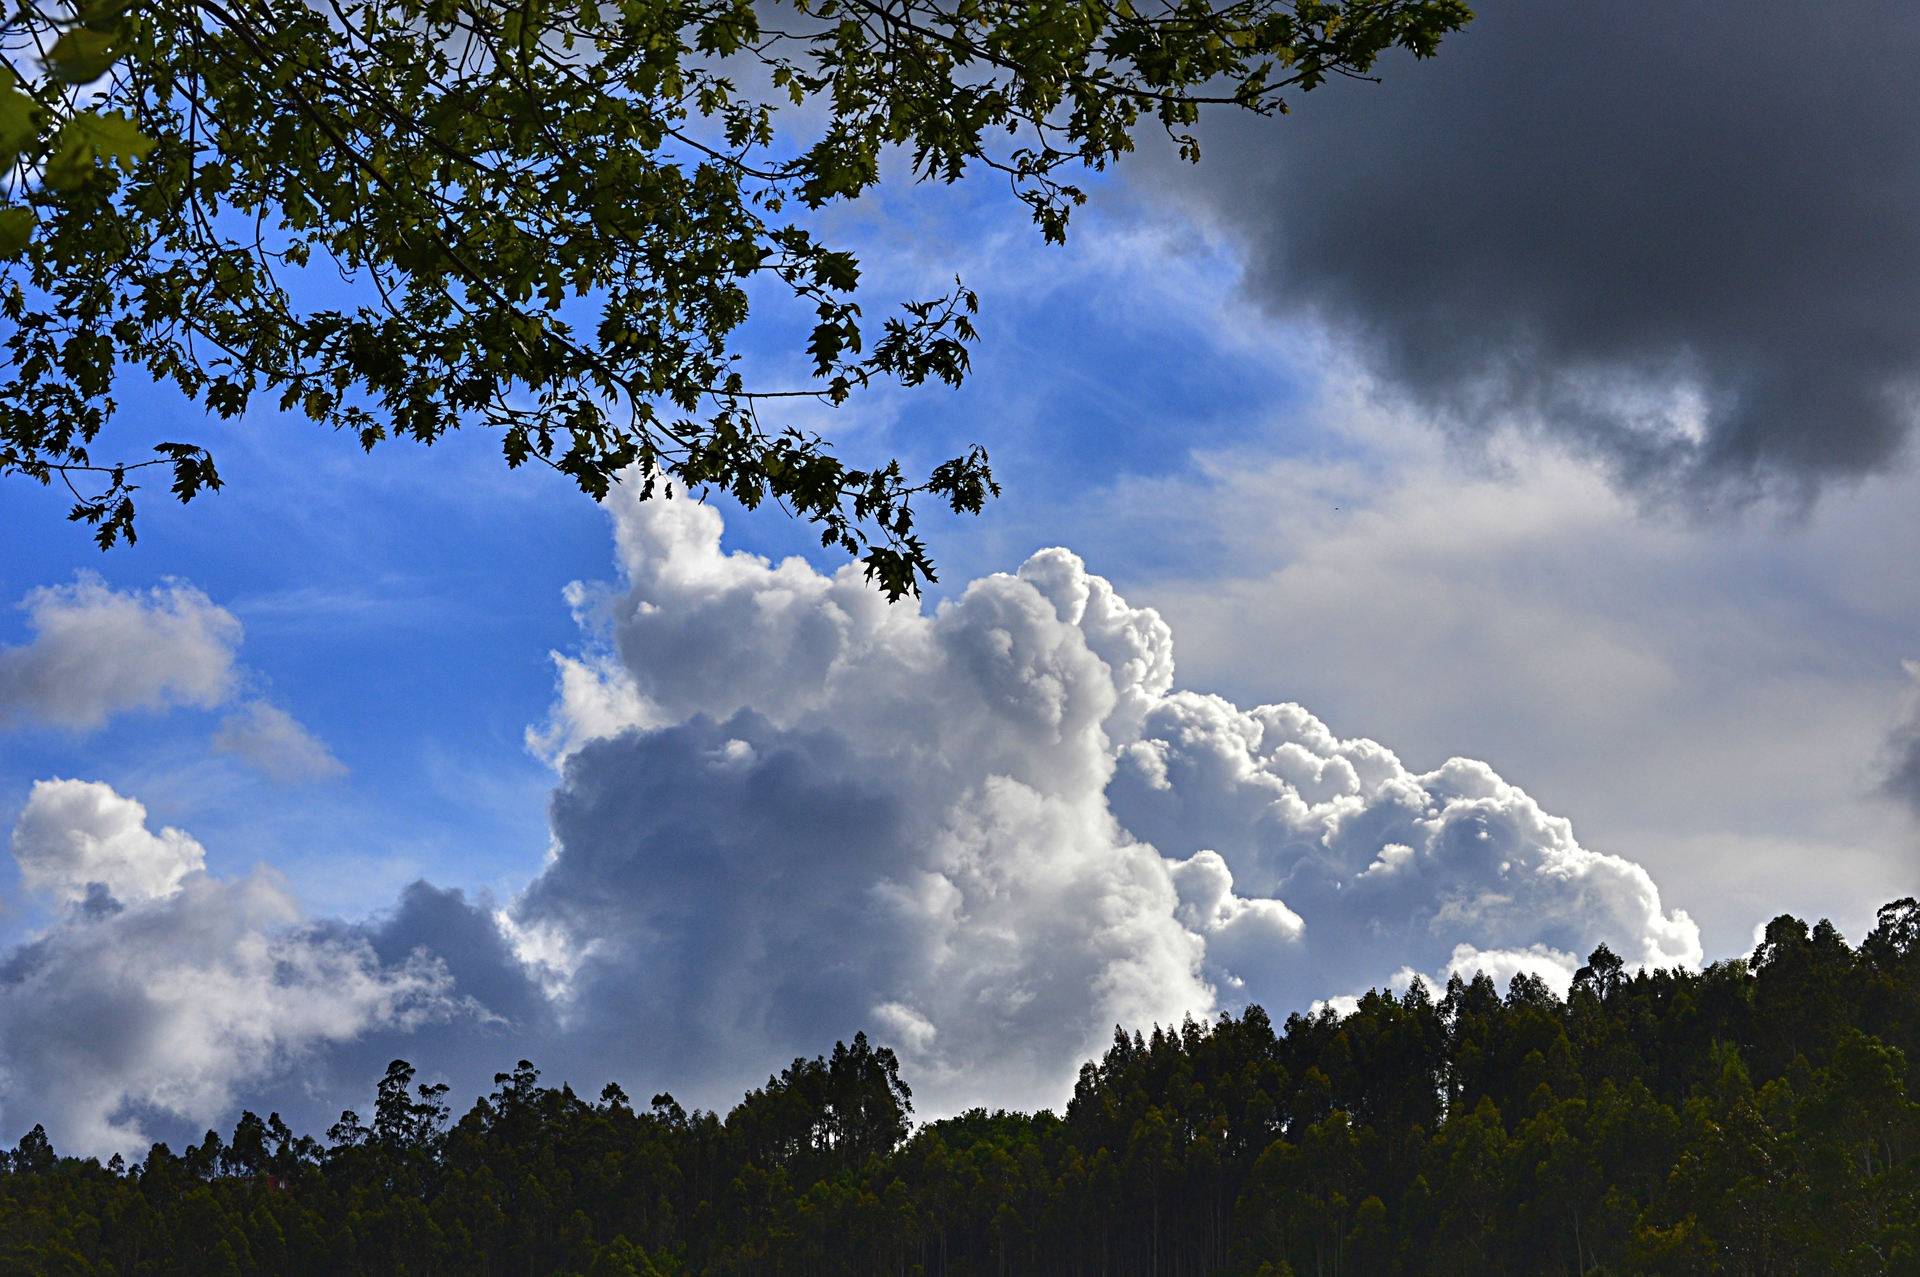 Storm on the way | manusfer, cloud, countryside, nobody